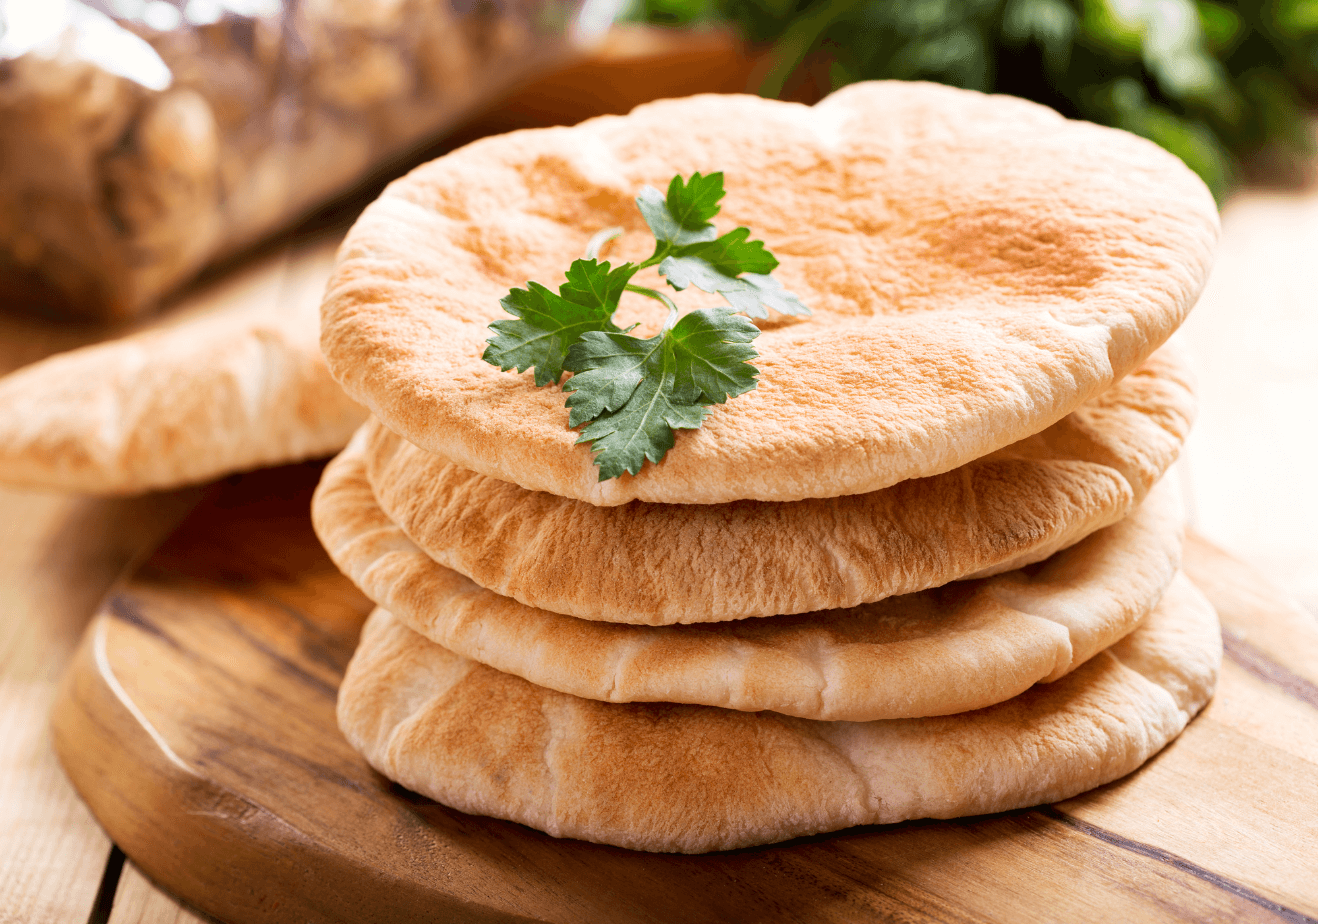 Pita Bread from the Middle East